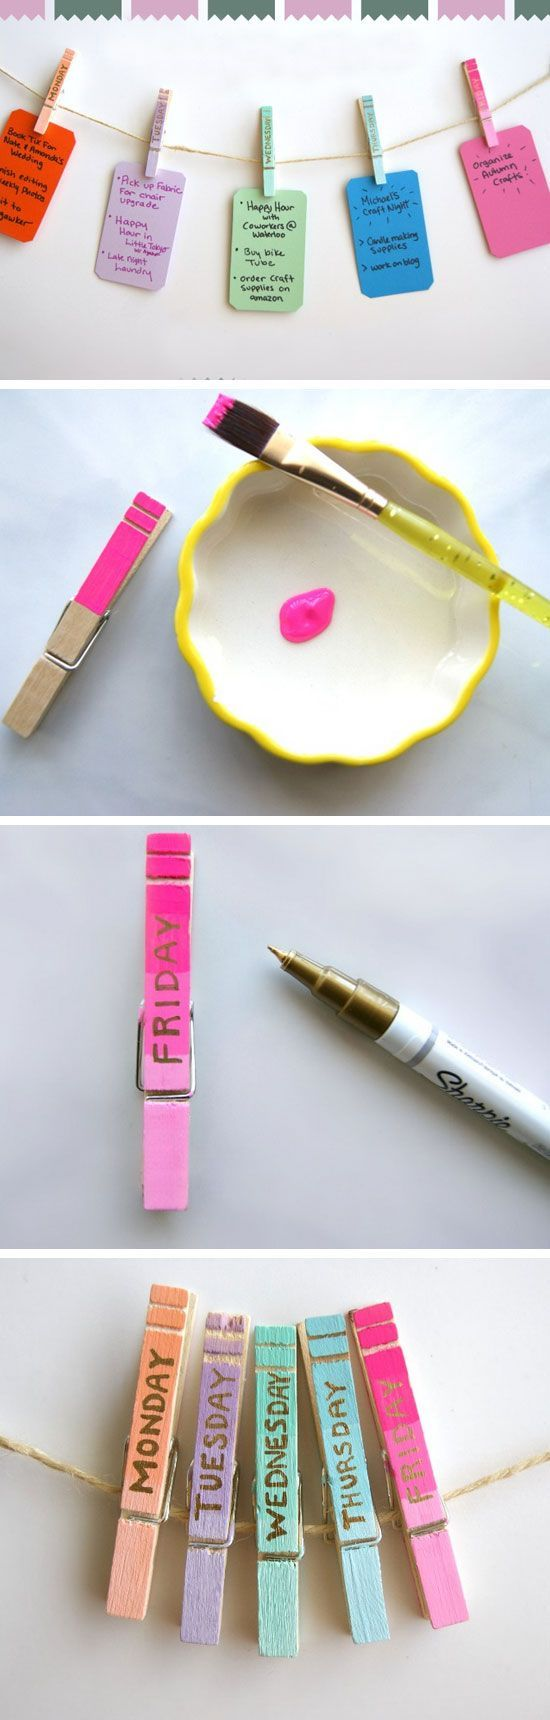 Clothespin Daily Organizers | 23 Life Hacks Every Girl Should Know | Easy Organization Ideas for Bedrooms: